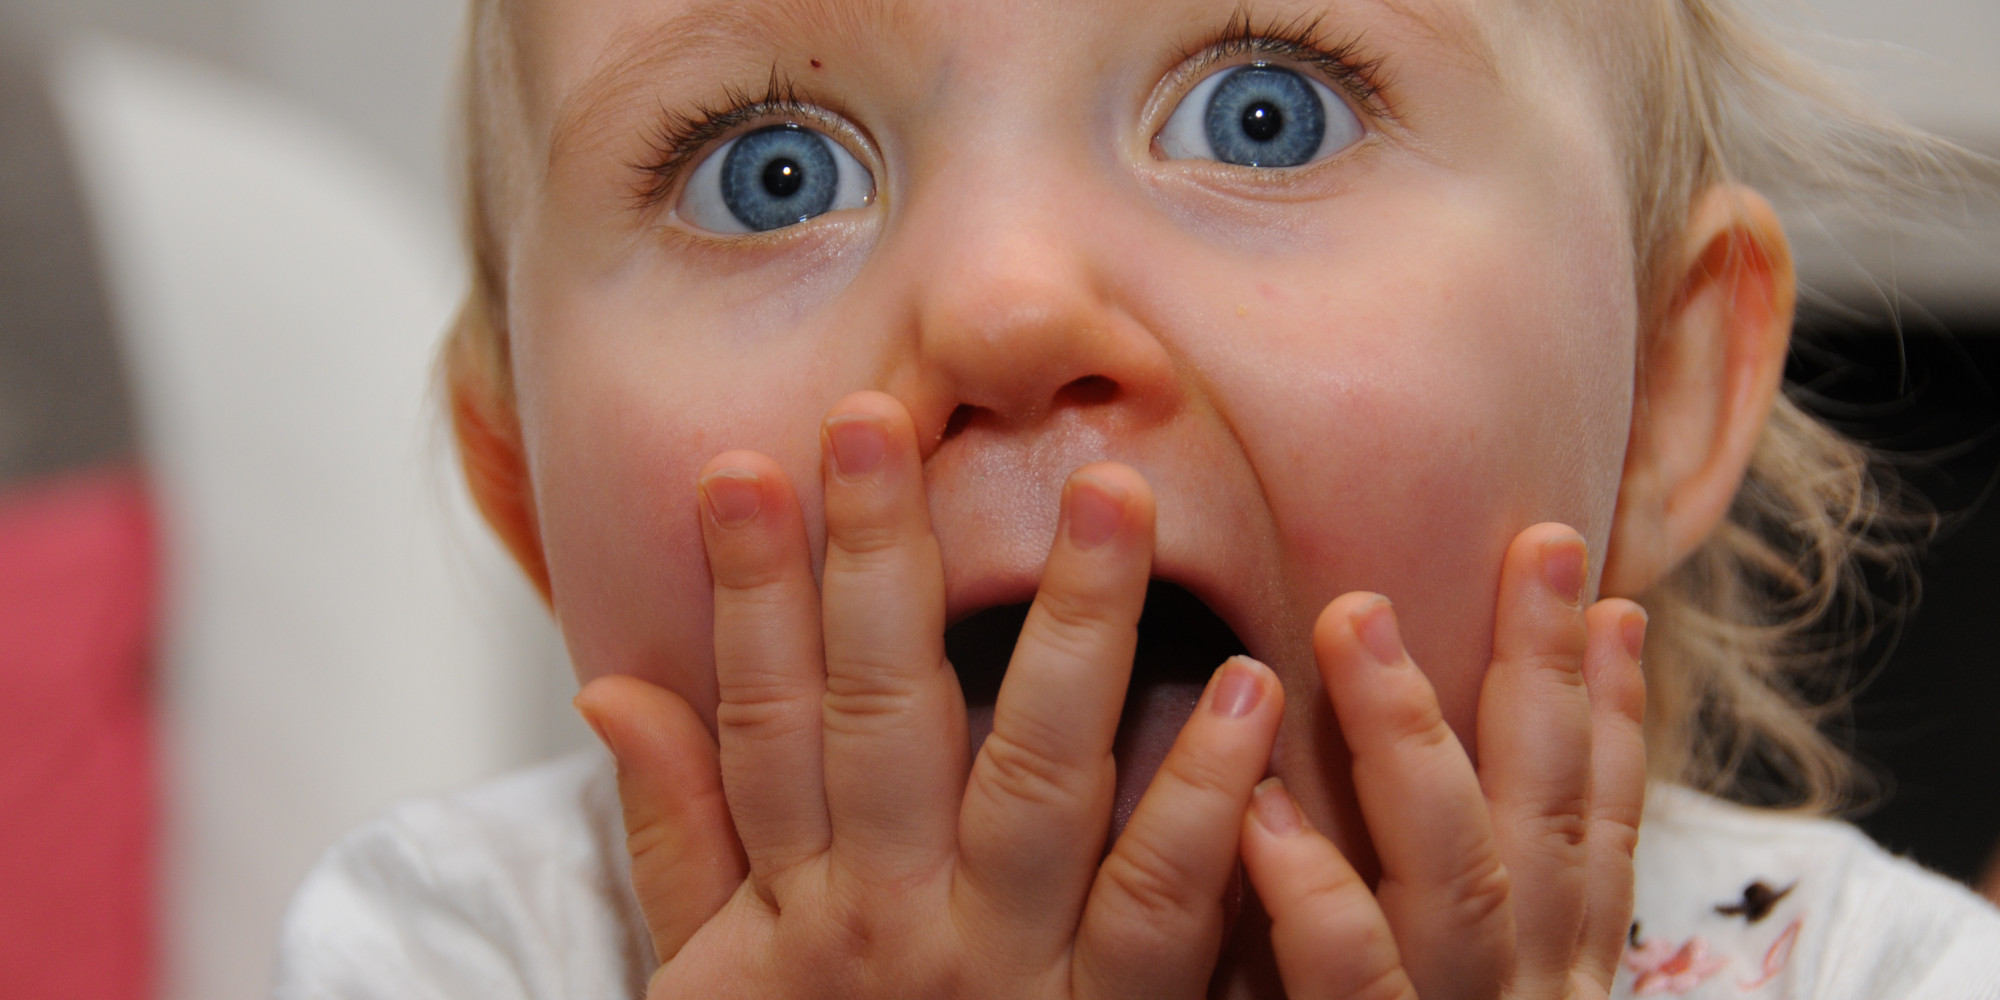 An Alarming Number Of People Don't Know How Babies Are Made: Report ...